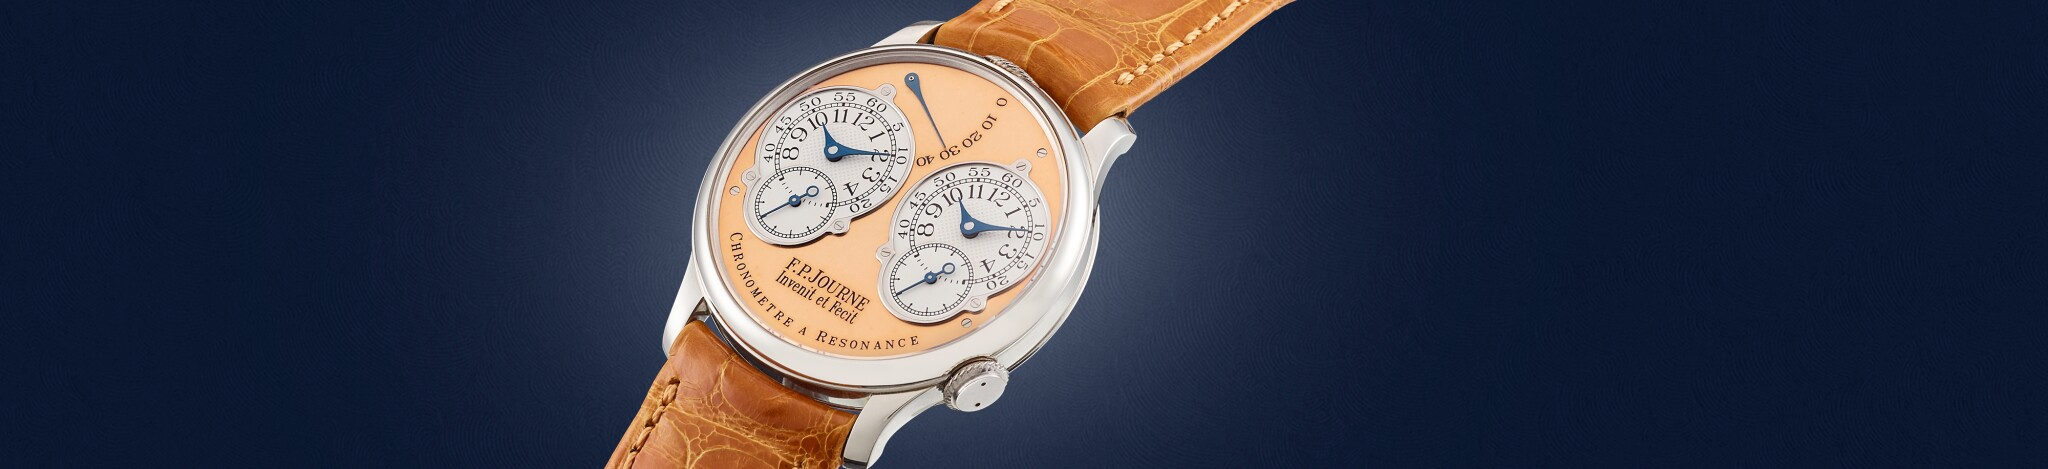 Watches Weekly | F.P Journe, Piaget & The Atmos Clock